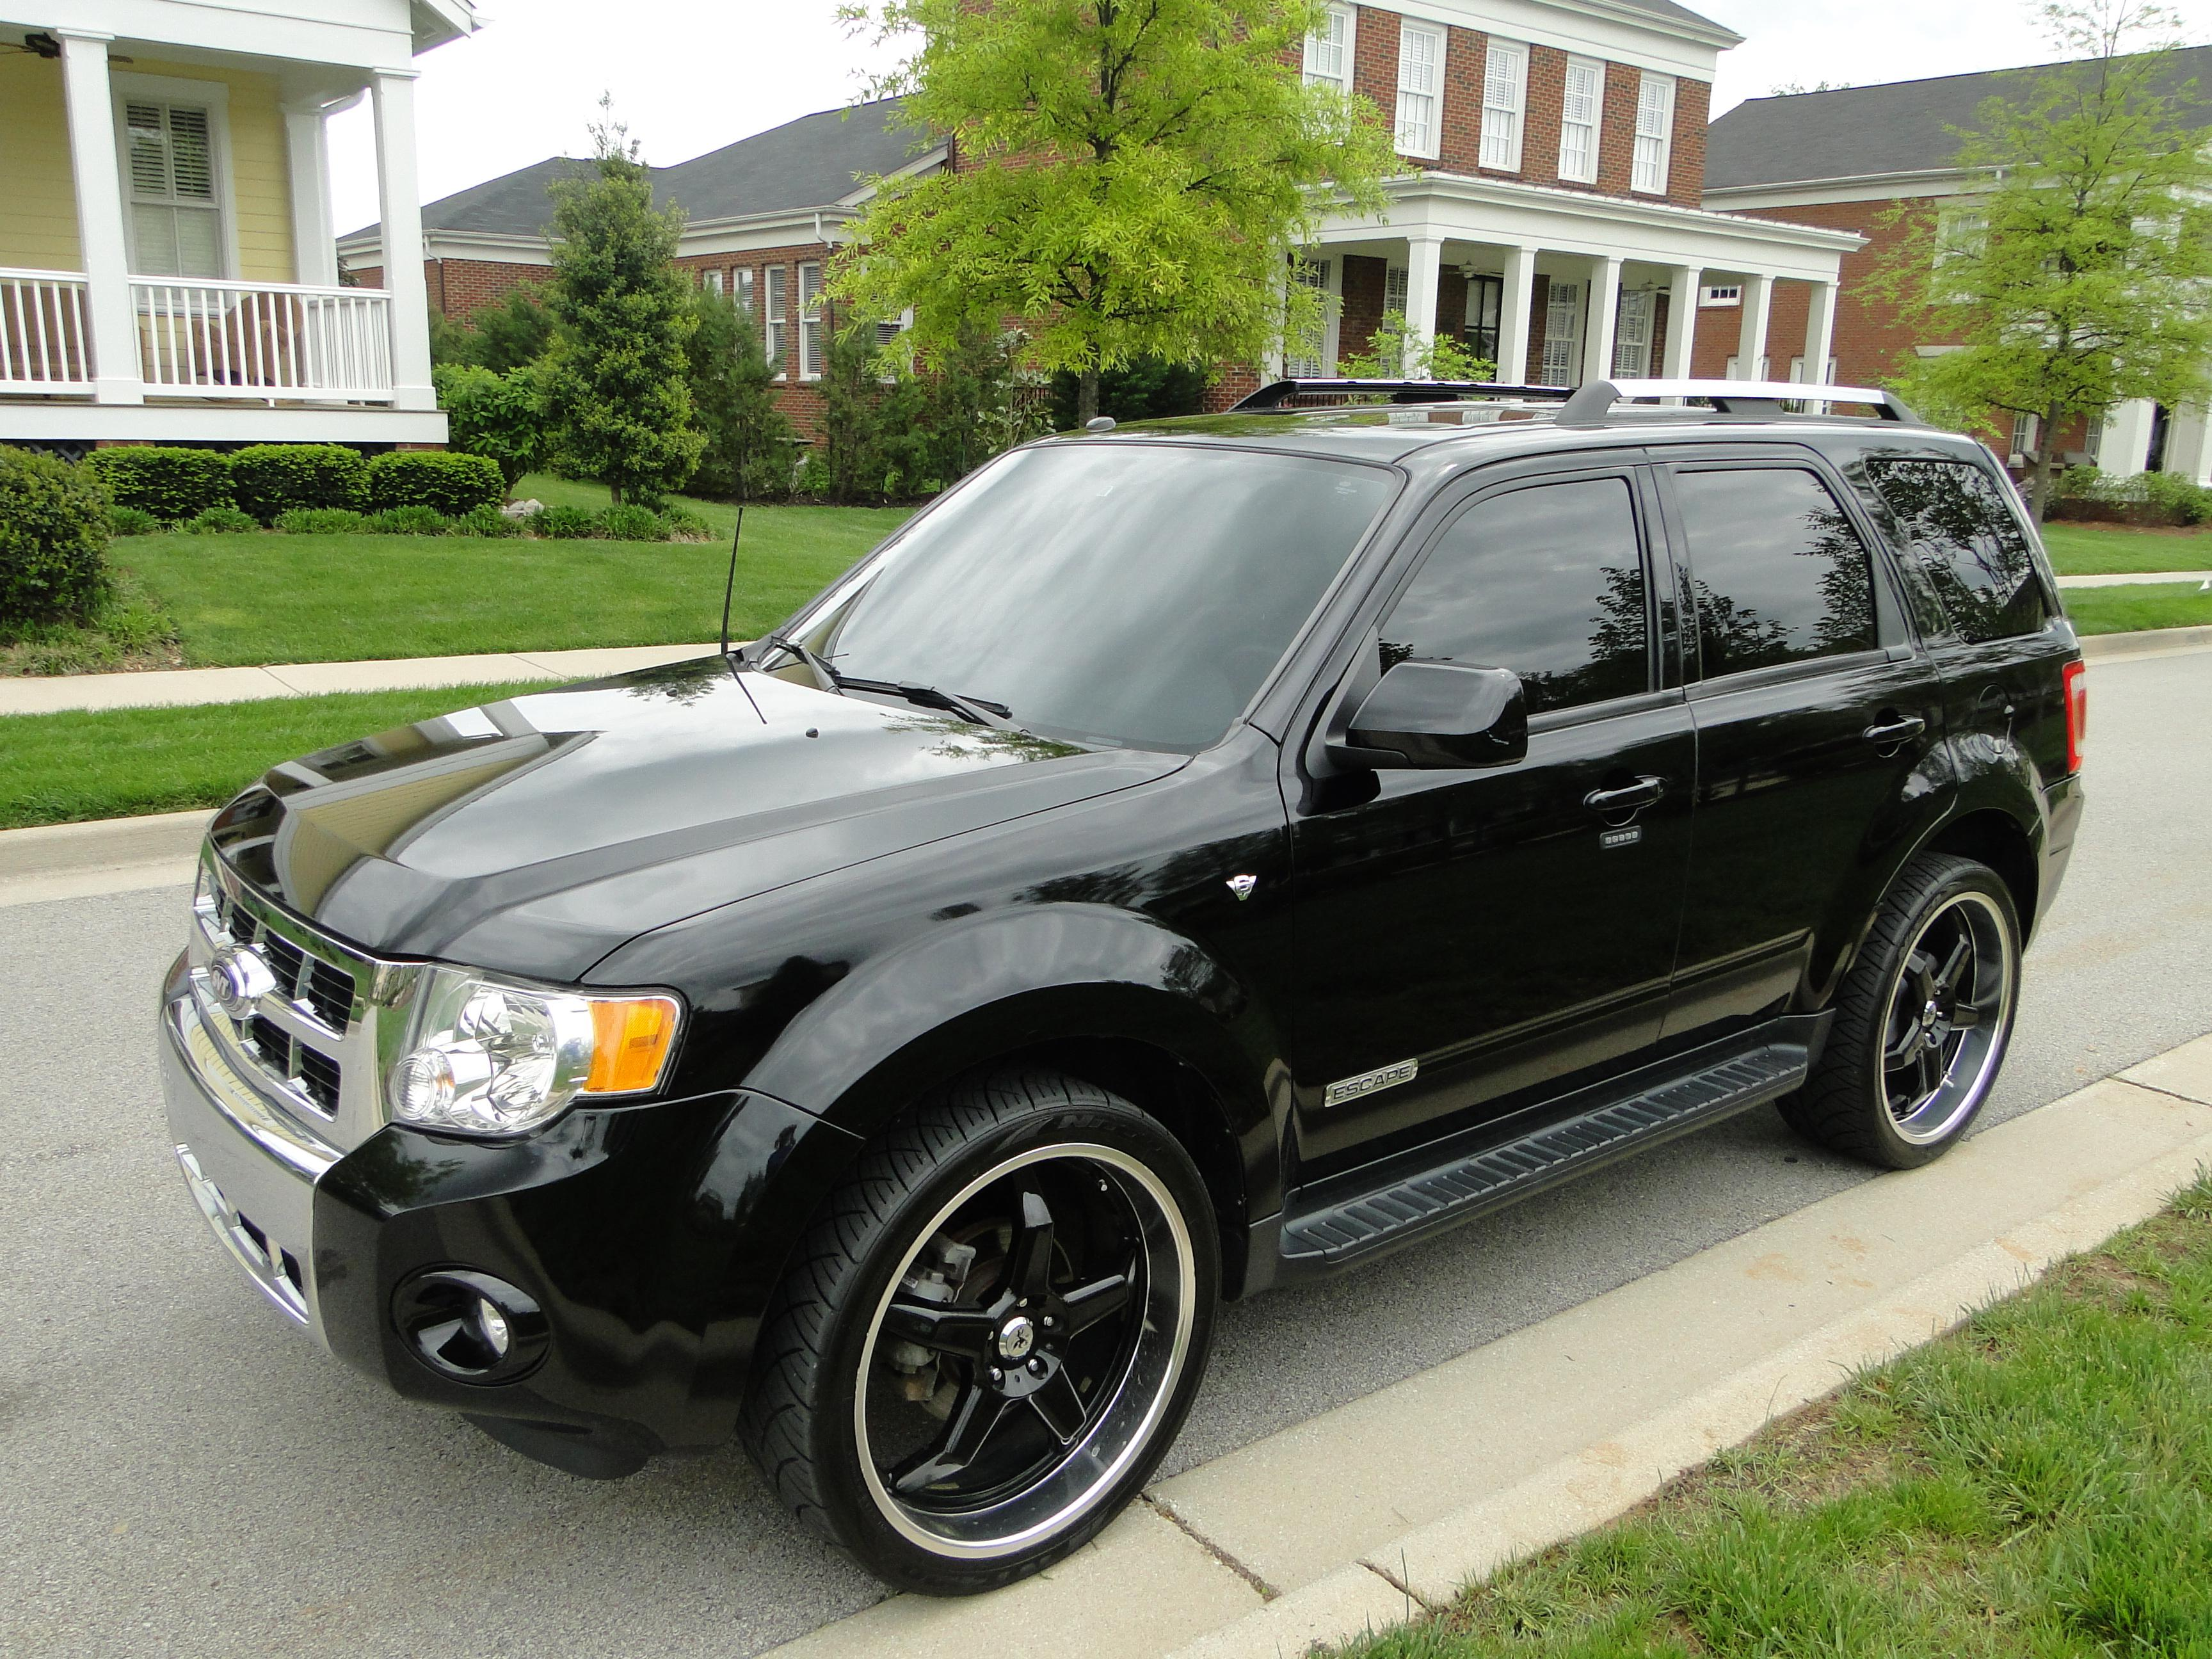 villebillybenz 2008 ford escapelimited sport utility 4d specs photos modification info at. Black Bedroom Furniture Sets. Home Design Ideas